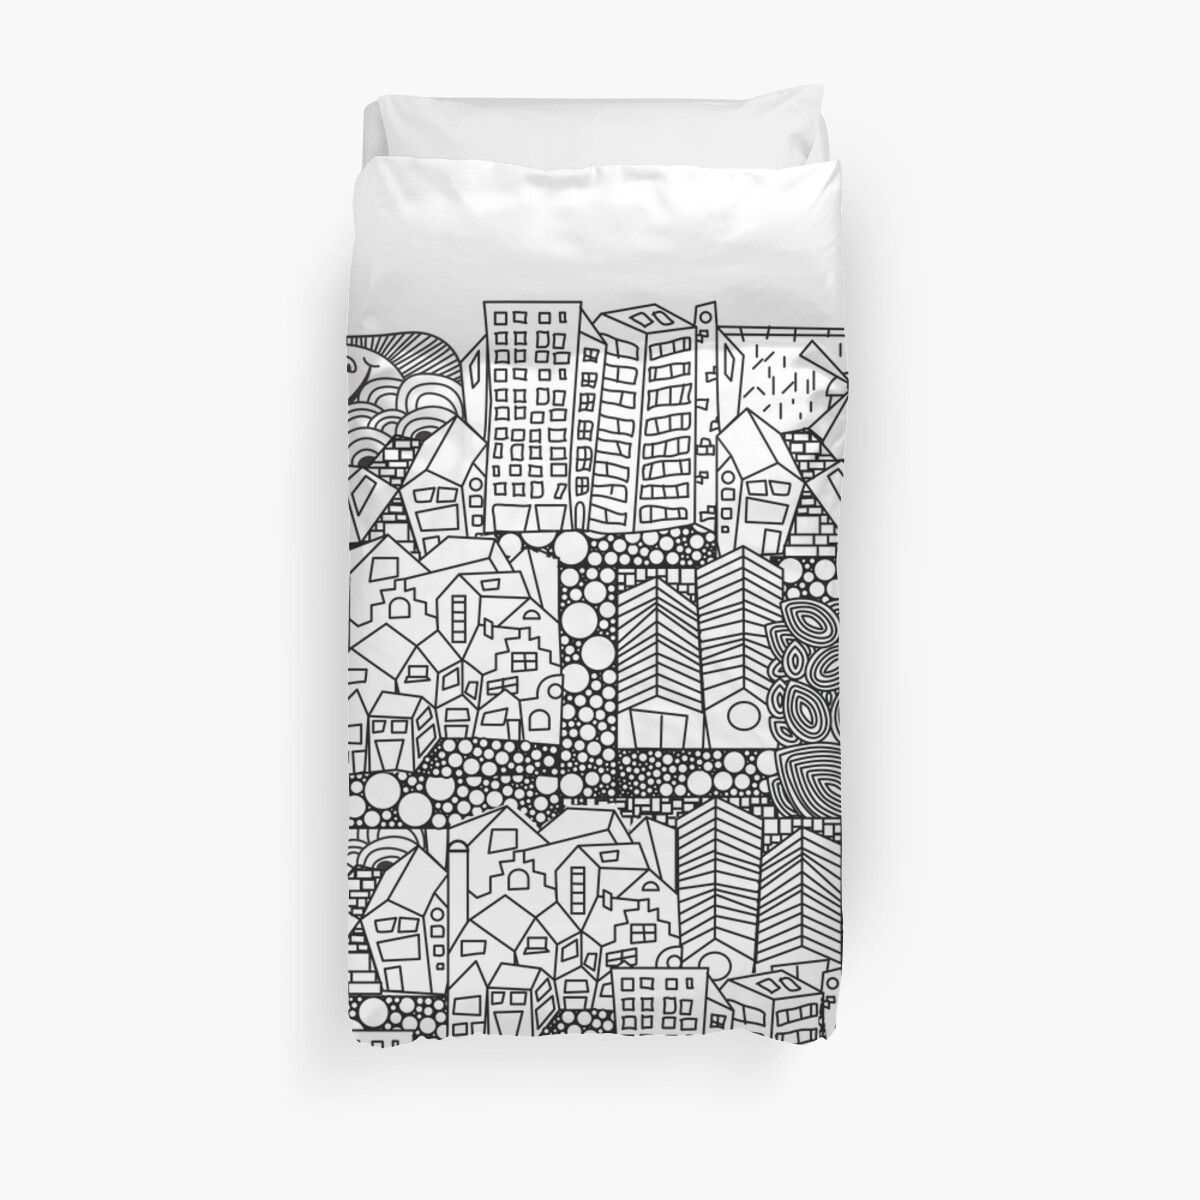 Doodle and the city by StudioRenate